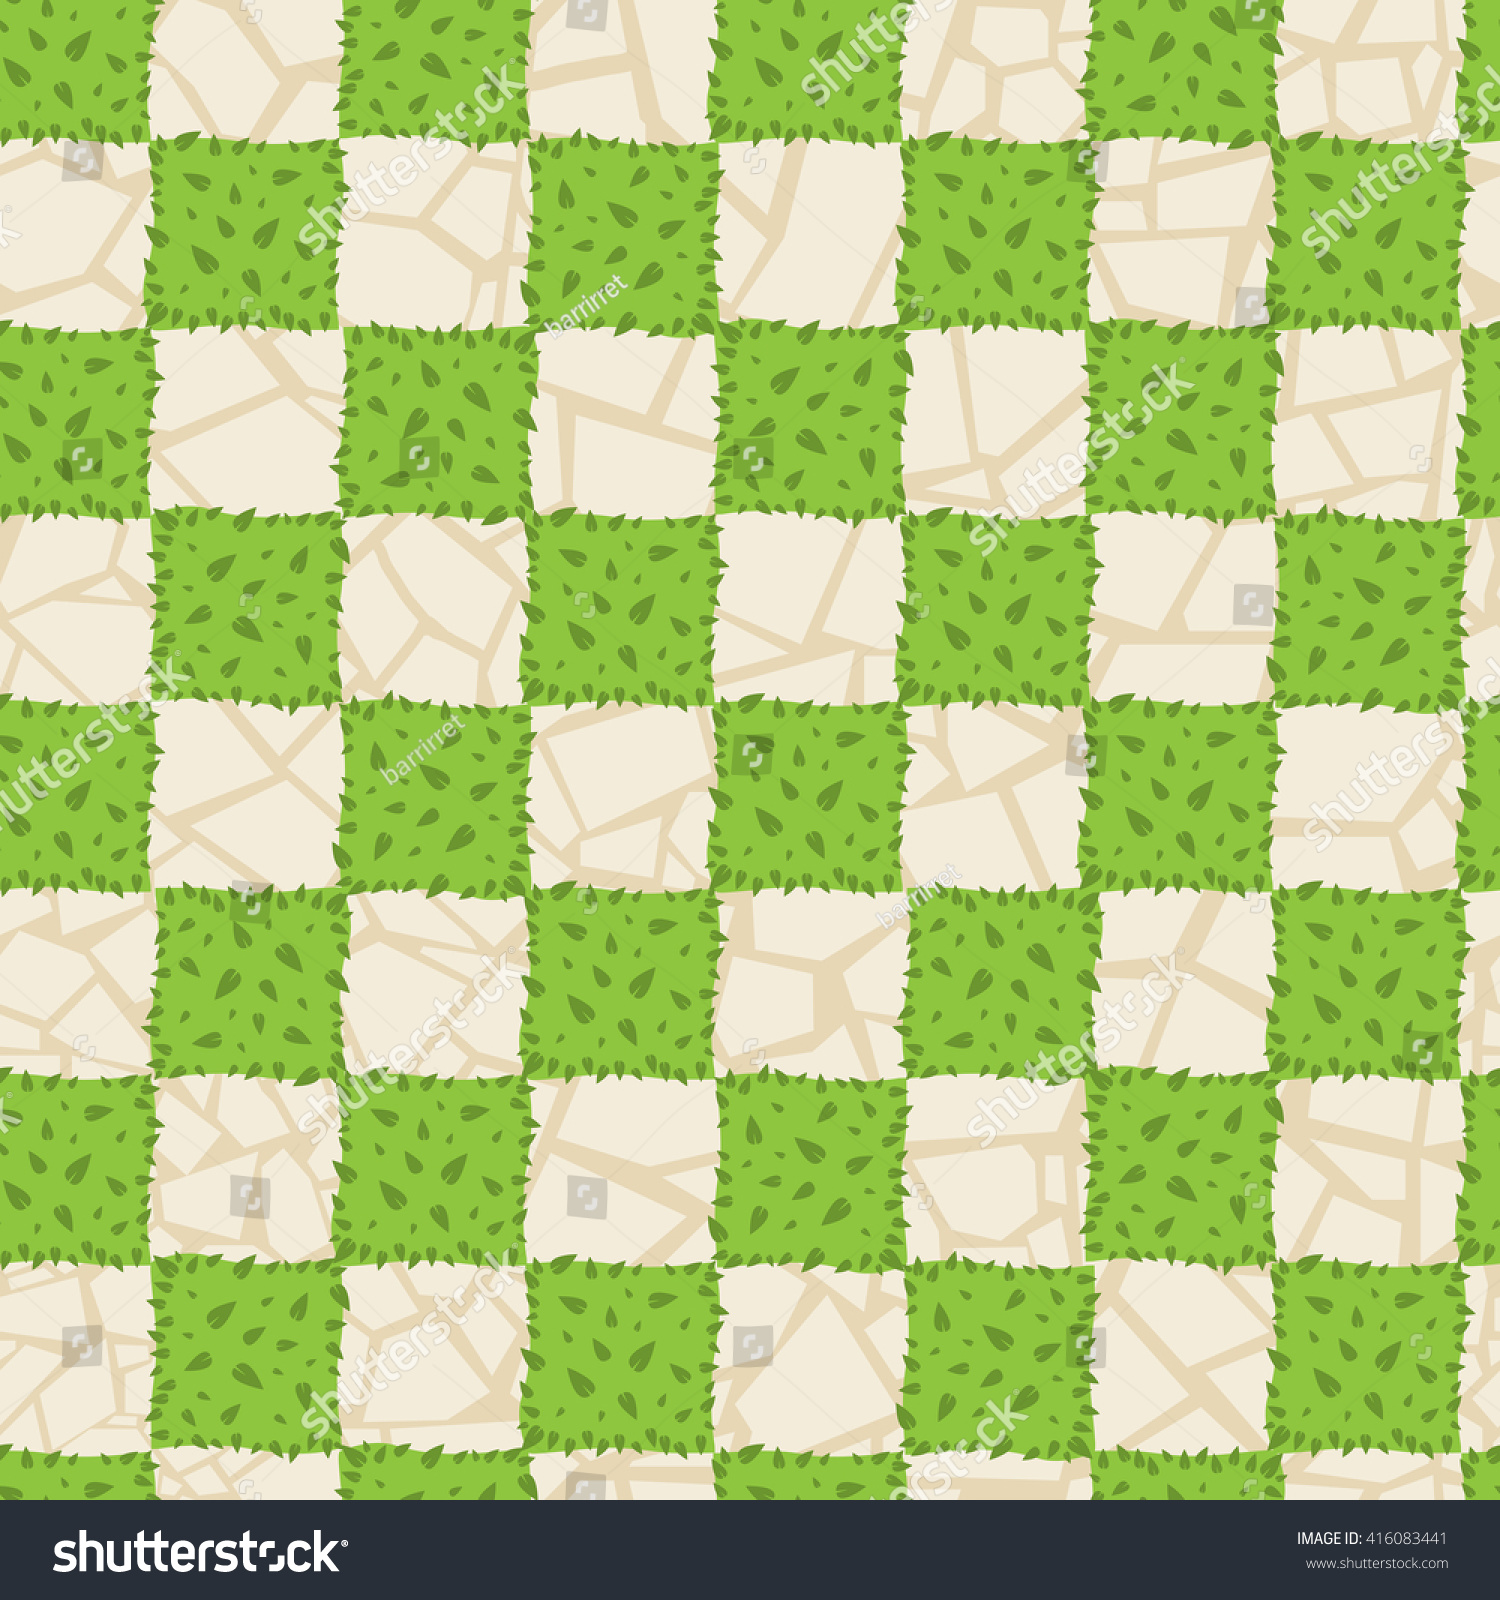 seamless grass texture game. Vector Seamless Pattern With Stone And Grass, Bush. Abstract Chess Pattern. Beige Grass Texture Game